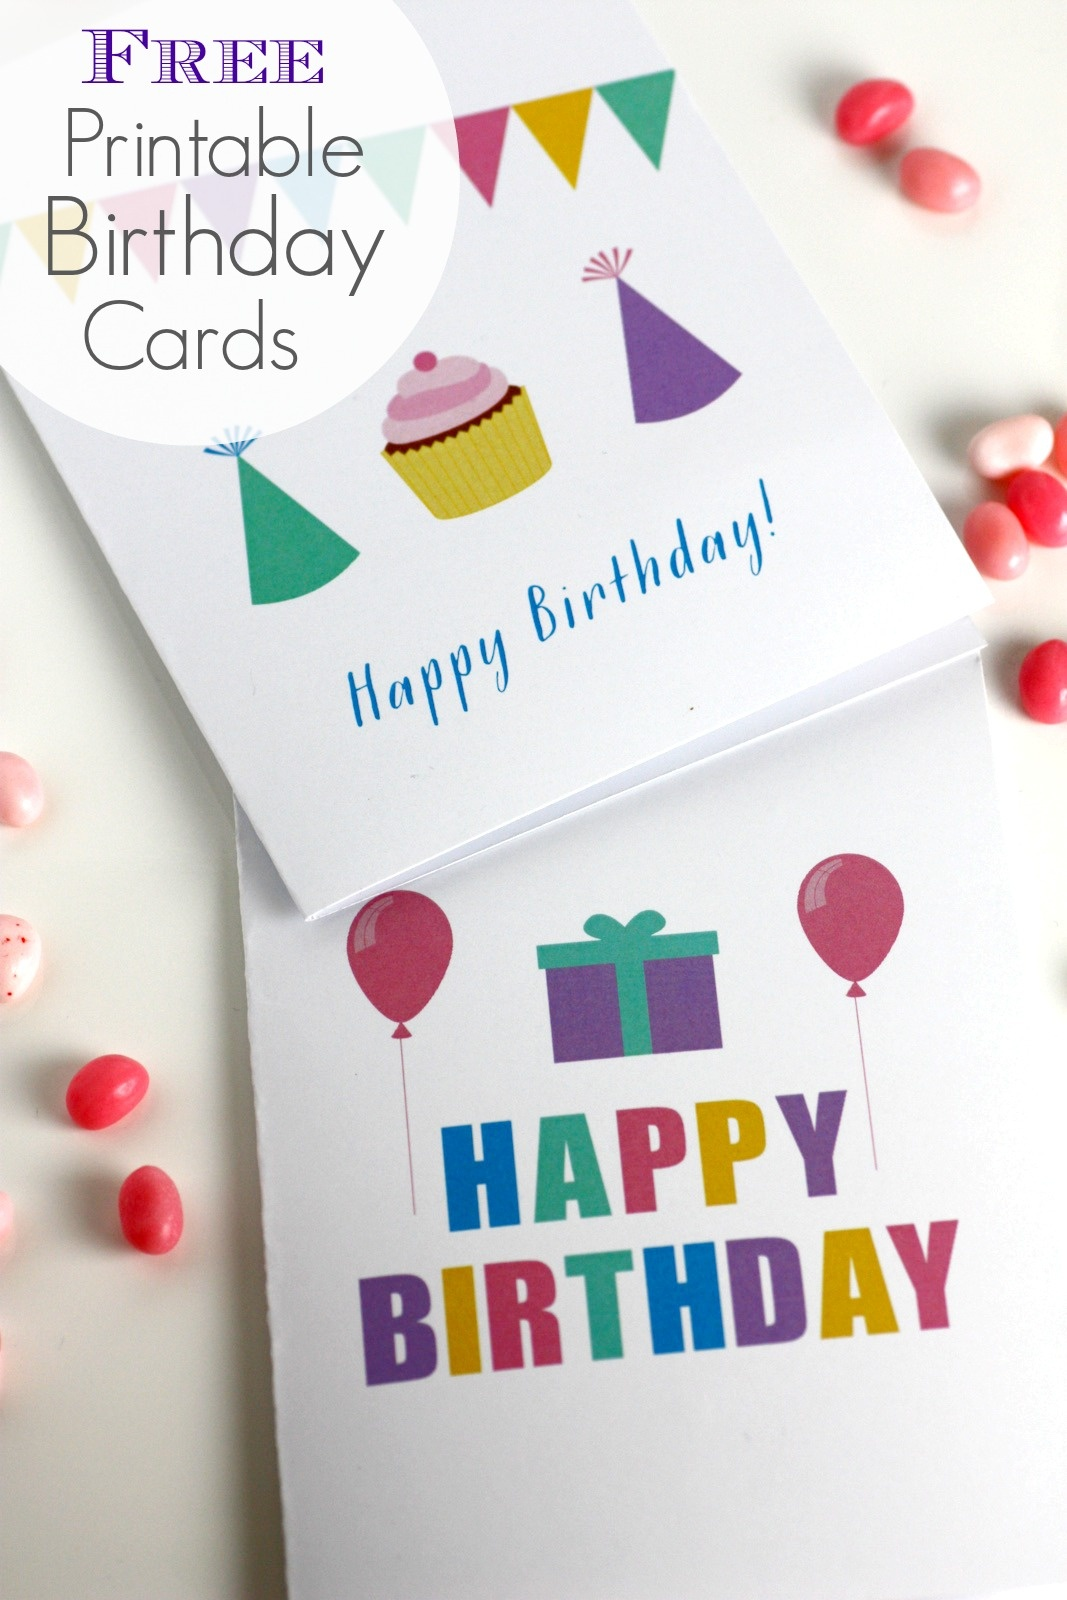 Free Printable Blank Birthday Cards | Catch My Party - Free Printable Greeting Cards No Sign Up